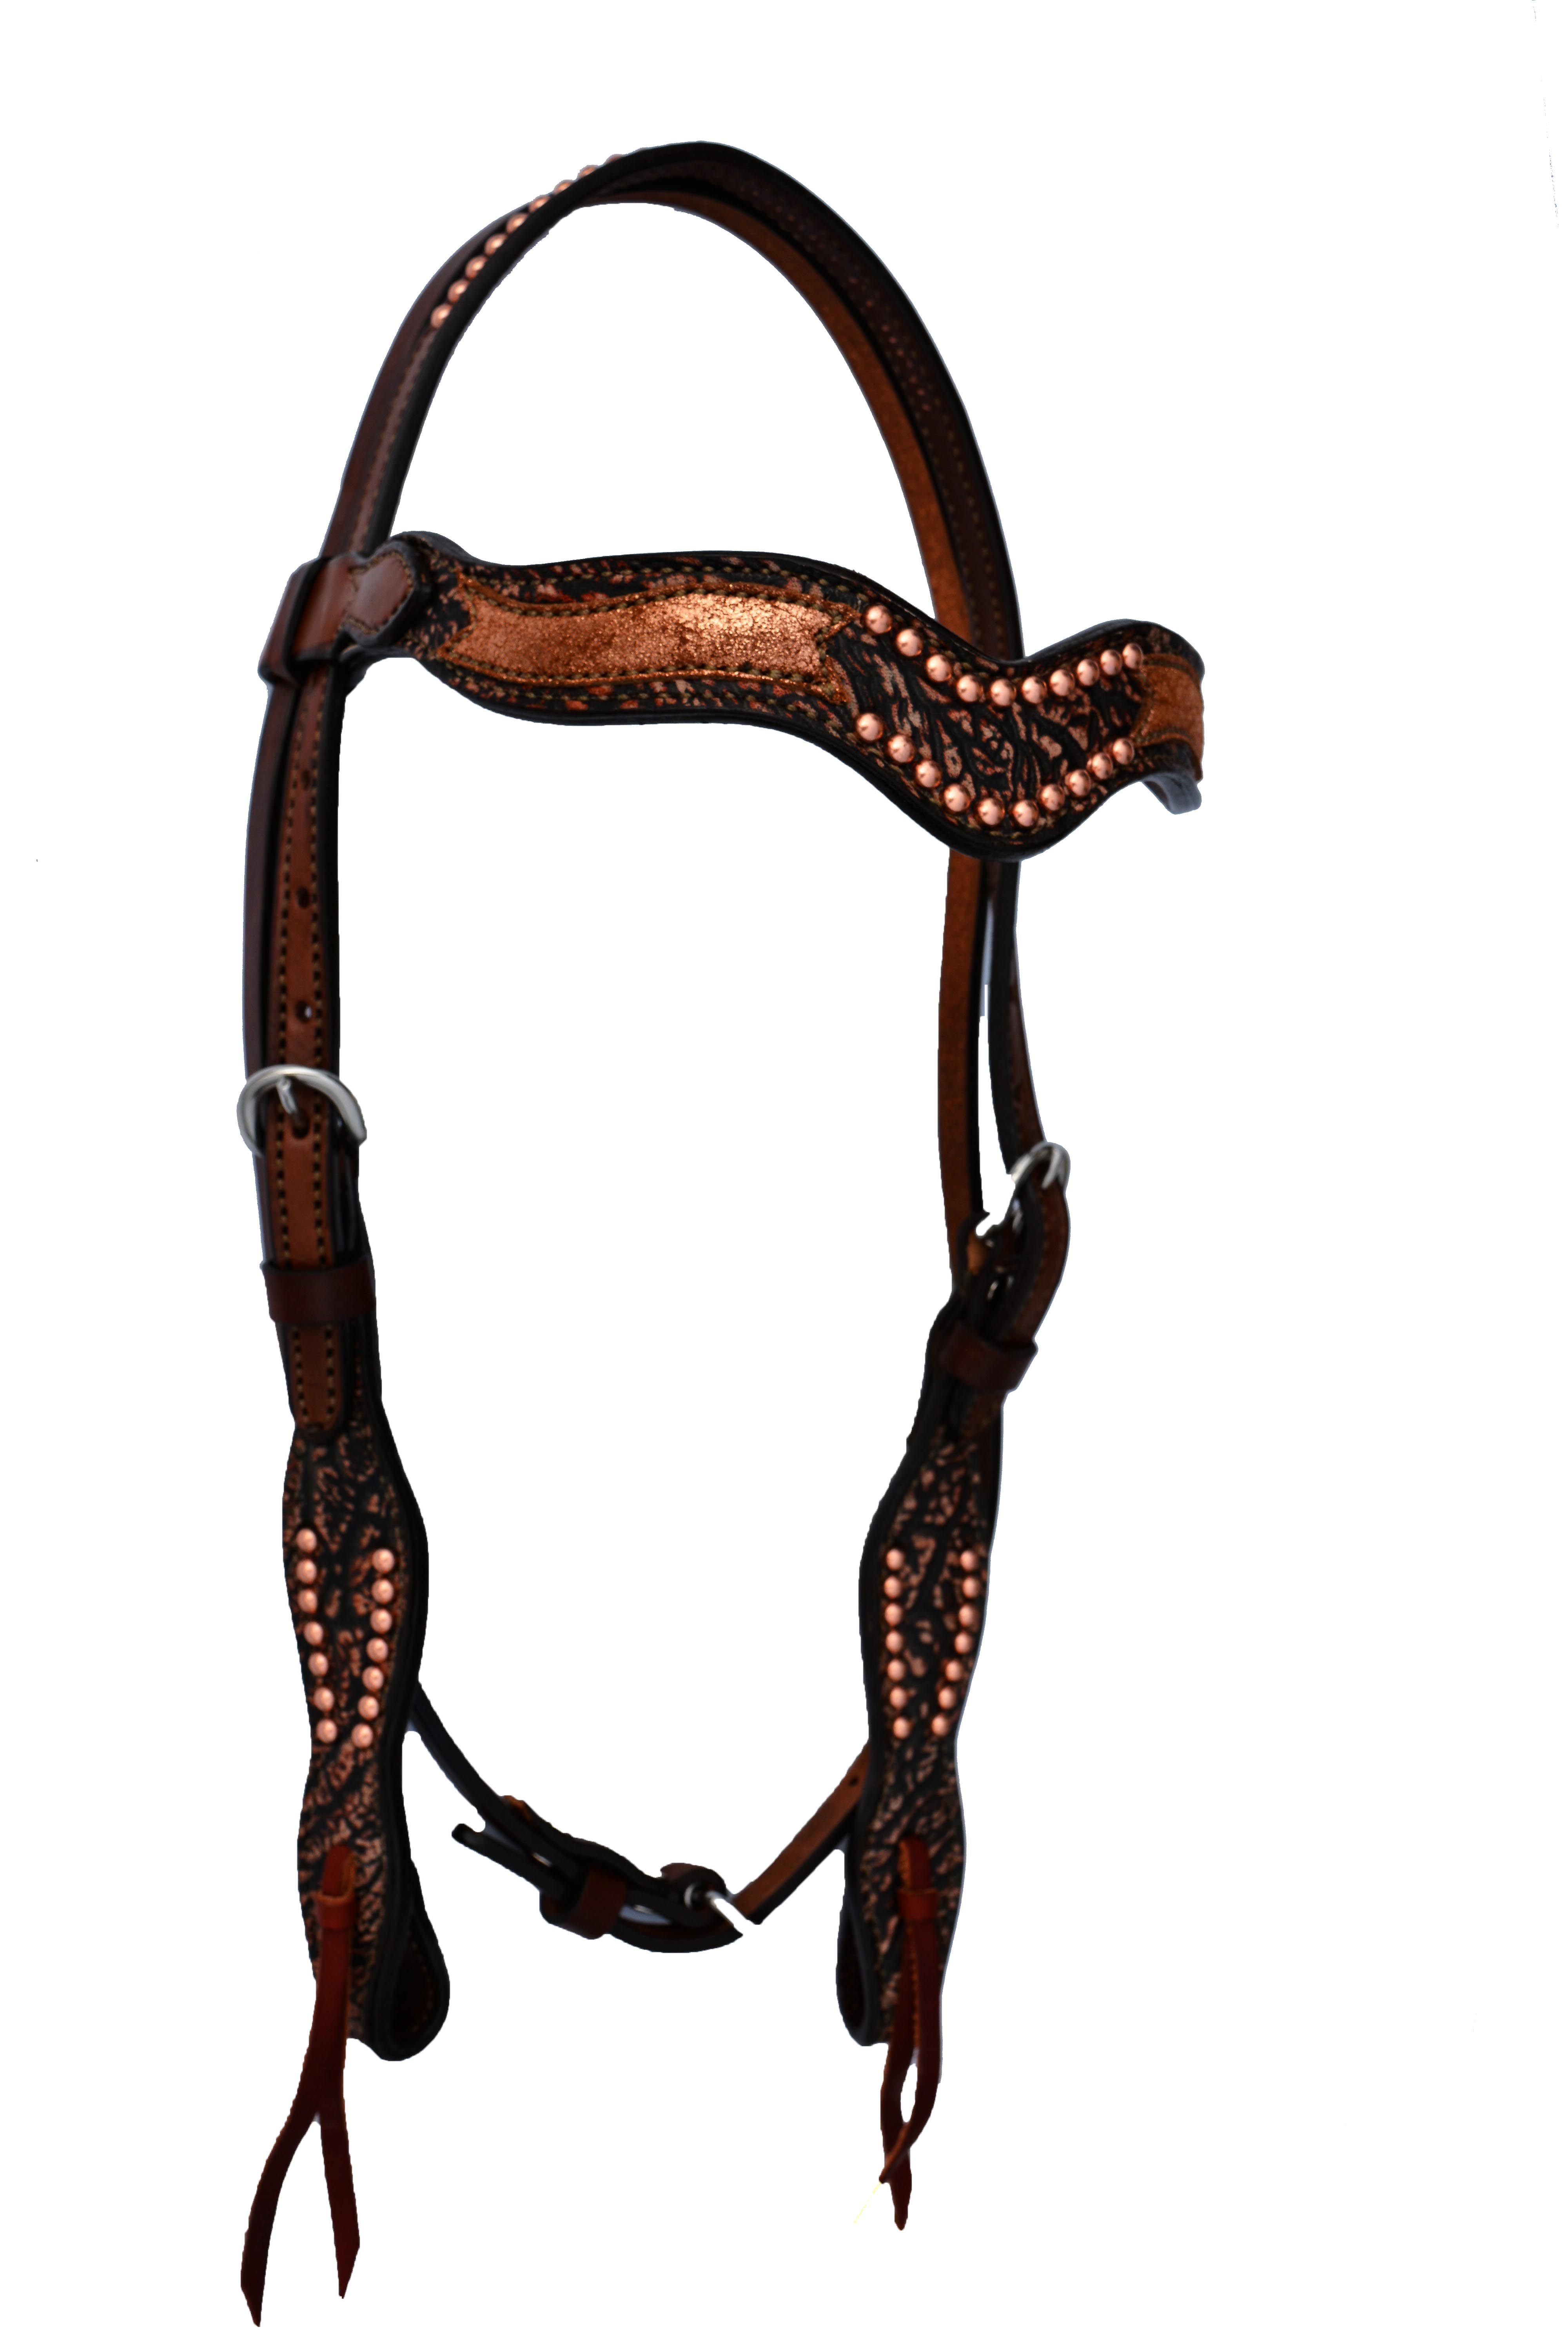 2117-CA Sleek Wave Headstall w/ Copper Crackle Overlay